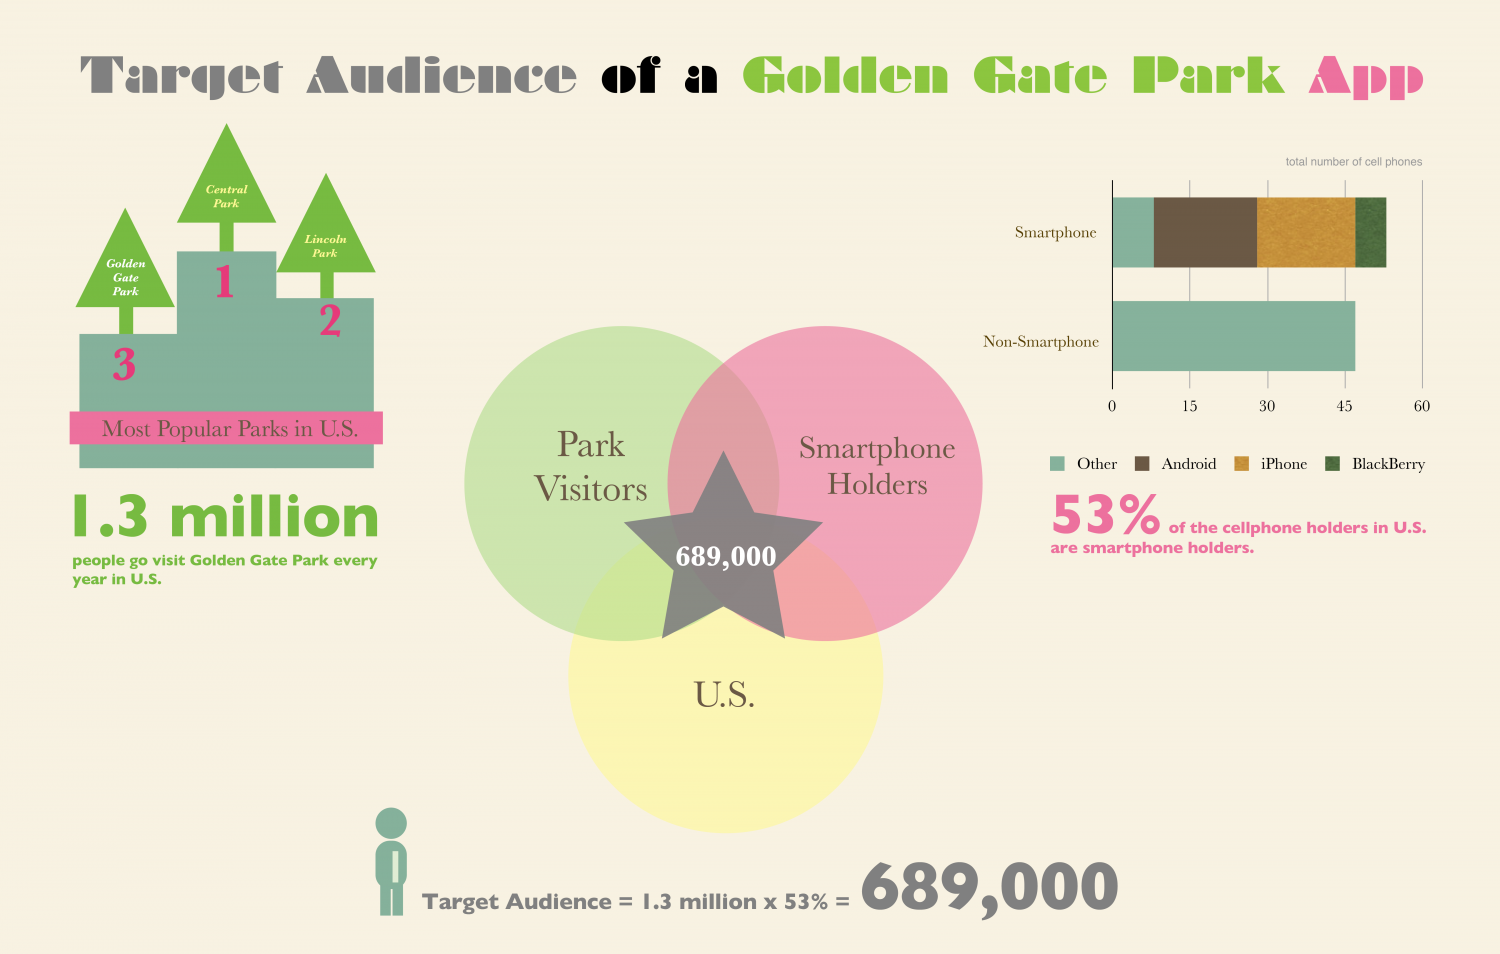 Target Audience of a Golden Gate Park App Infographic